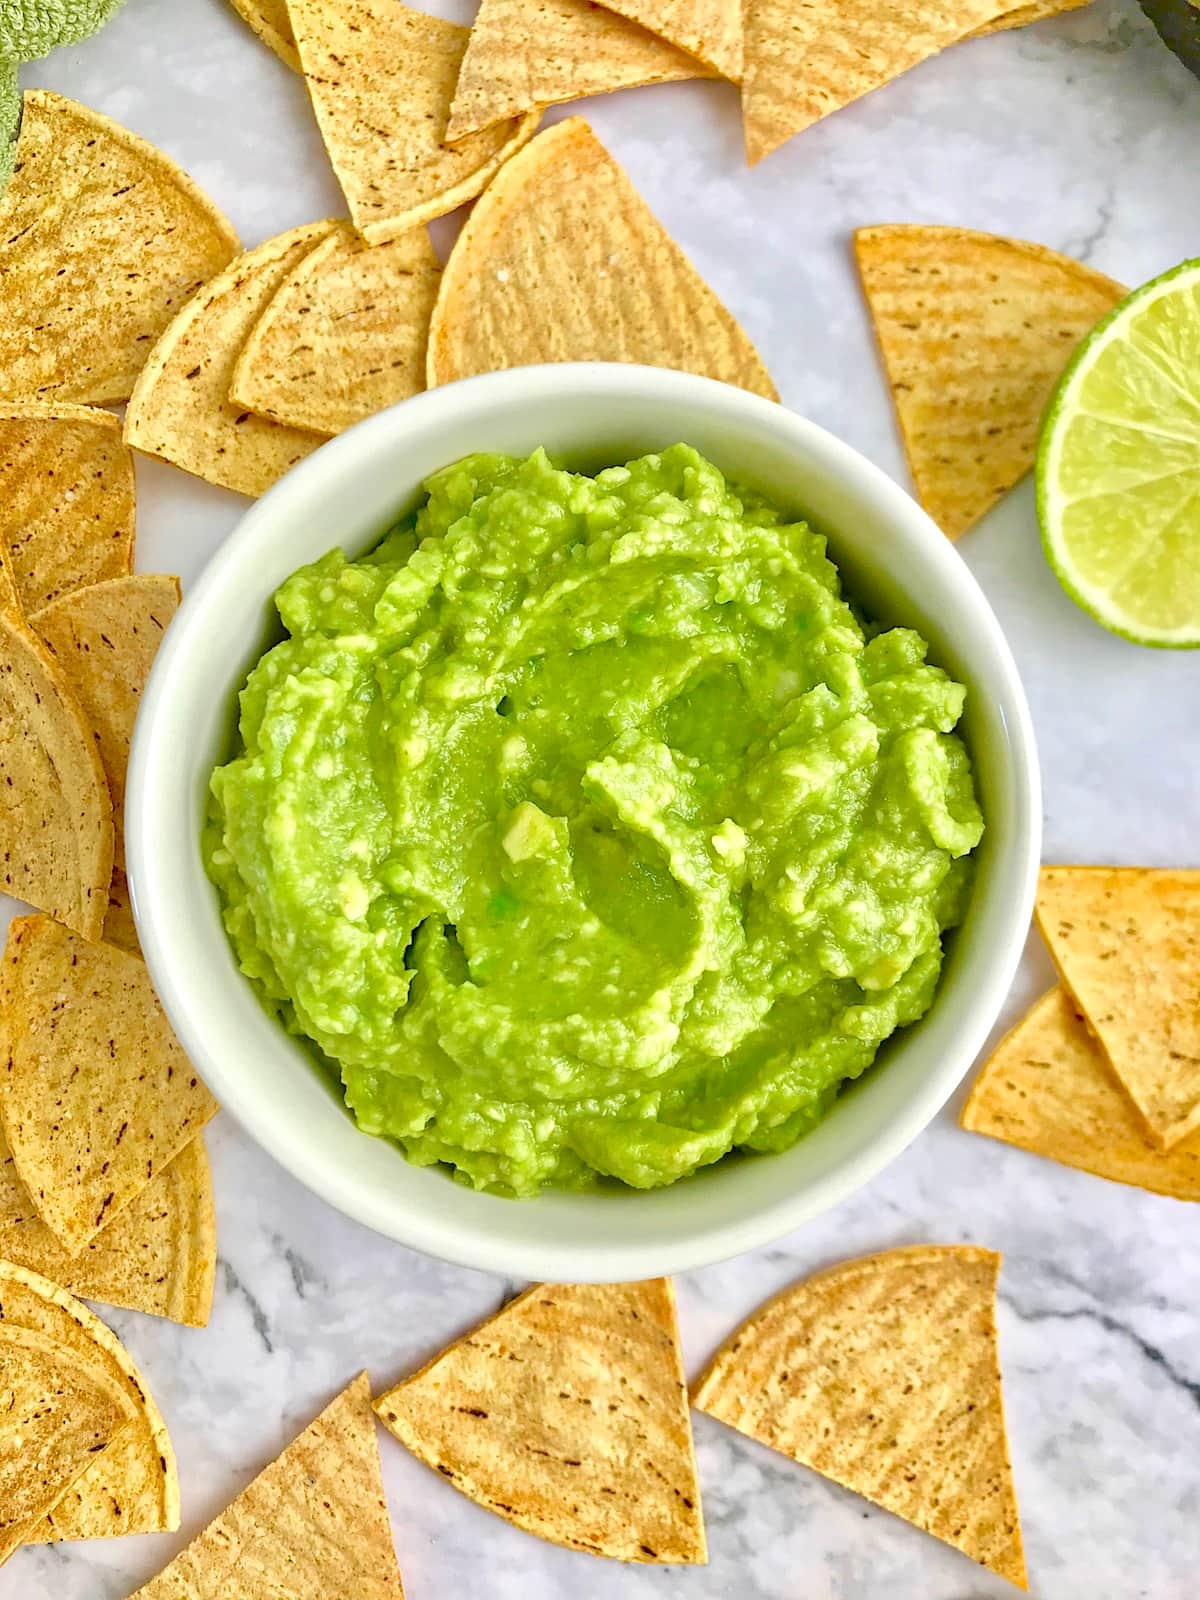 Green guacamole in a white dish, surrounded by tortilla chips.